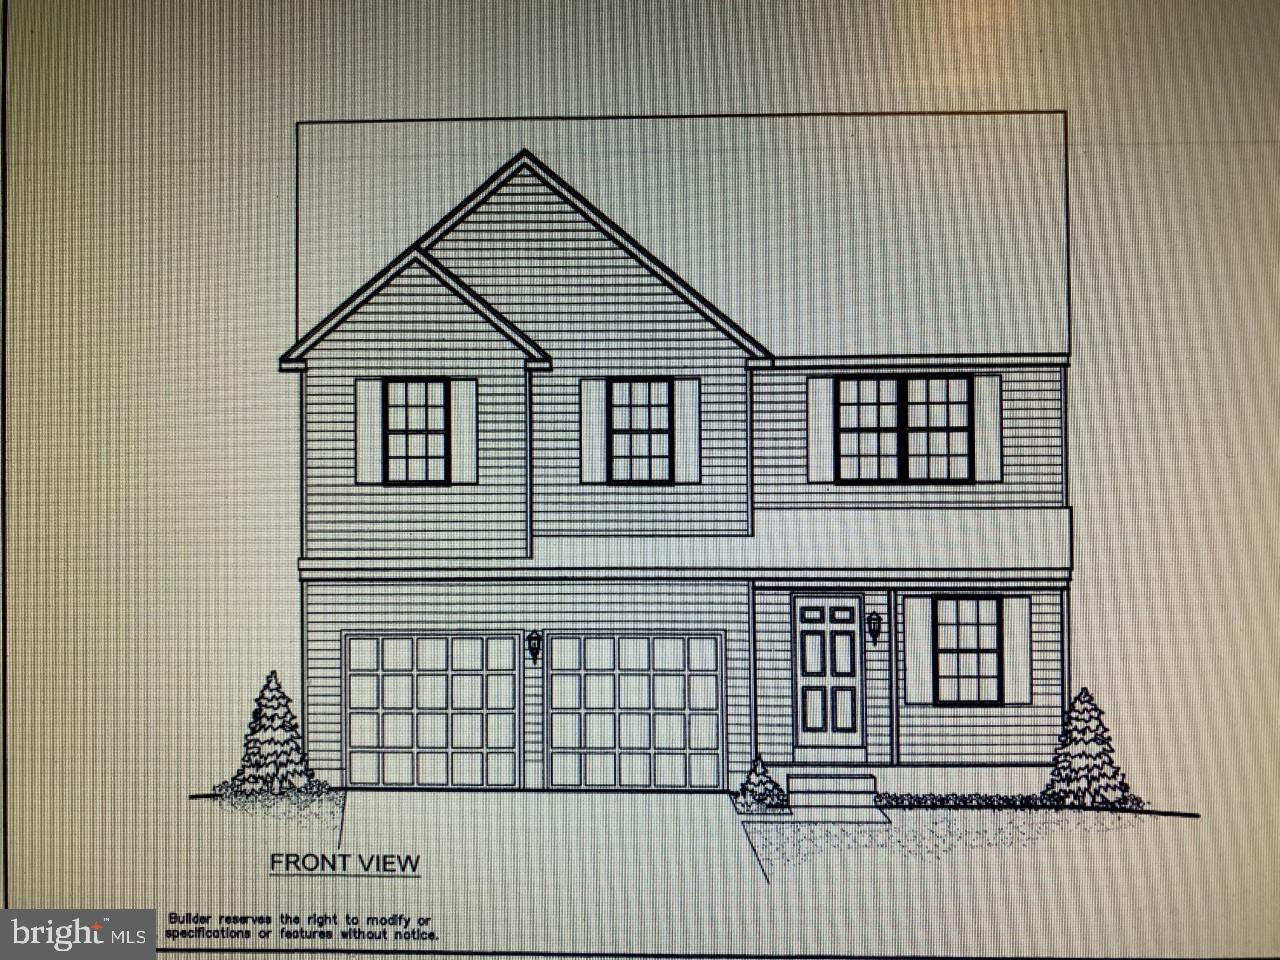 """READY Late April 2021! The home is now being framed and available to walk thru once the home in under roof with windows and door; so you can see the size of the rooms. This Stunning in North Wilmington is currently under construction! Modern 4 BD, 2.5 BA Colonial offers the lifestyle you have been yearning to enjoy with a level low maintenance corner lot in a spectacular location; Bike to Brandywine Park, Play Golf at Rock Manor or DuPont Country Club, or head to Rockwood Park for the Ice Cream festival and Summer Concerts. This is the home you will love. The Inviting front porch Welcomes you into a Formal Living room that has beautiful light filled seating area open to the stairwell which is finished in turned metal with basket spindles and wood handrails. The Hallway has entry from the 2 car garage, a coat closet, private powder room and a classic designed arch passageway to the Great room. Open eat-in kitchen plan is slated to have bright white 42"""" wall cabinets with crown molding, subway tile, in wall oven & microwave, a prominent Euro style recirculating range hood over the Stainless Steel Gas counter cook top, dishwasher, Granite counter tops and a bright sunny window overlooking the deep under mount sink. The entire 1st floor has 9' ceilings, to be finished in a hardscape flooring and raised baseboard trim package, Crown molded walls with chair rail & decorative molding accents that offer a wainscot effect plus a beautiful Boxed Bay window in the kitchen eating area. You choose how to live in this free form layout; a Formal Dining area or an even larger expanded Great room. The Great room has a Gas fireplace with lovely mantel and remote. Owner's suite is the homes retreat having 2 over-sized walk-in closets, spacious private bathroom with tile floor, tile surround soaking tub & separate seated shower, double sink vanity w granite counters, a peninsula fireplace and a relaxing seating area. The suite is the entire width of the home. There are 3 other spacious"""